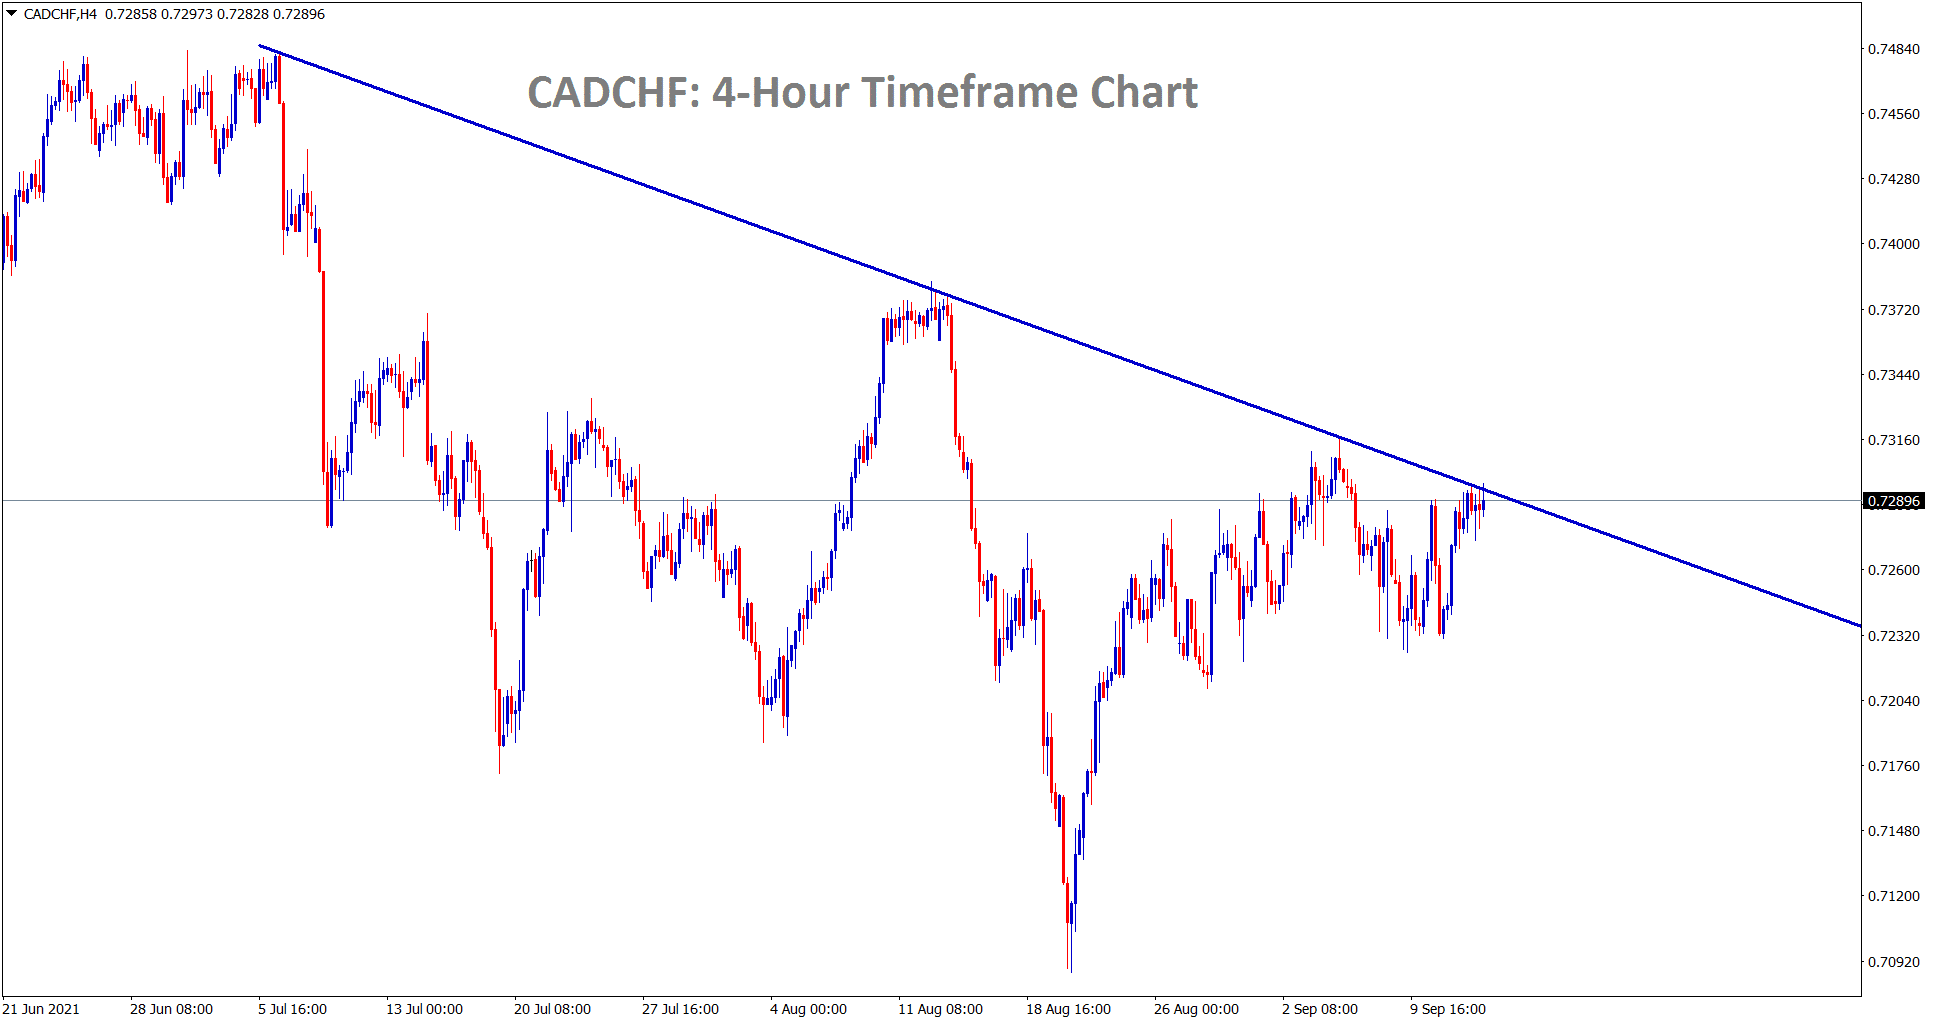 CADCHF is still consolidating at the lower high area of the downtrend line